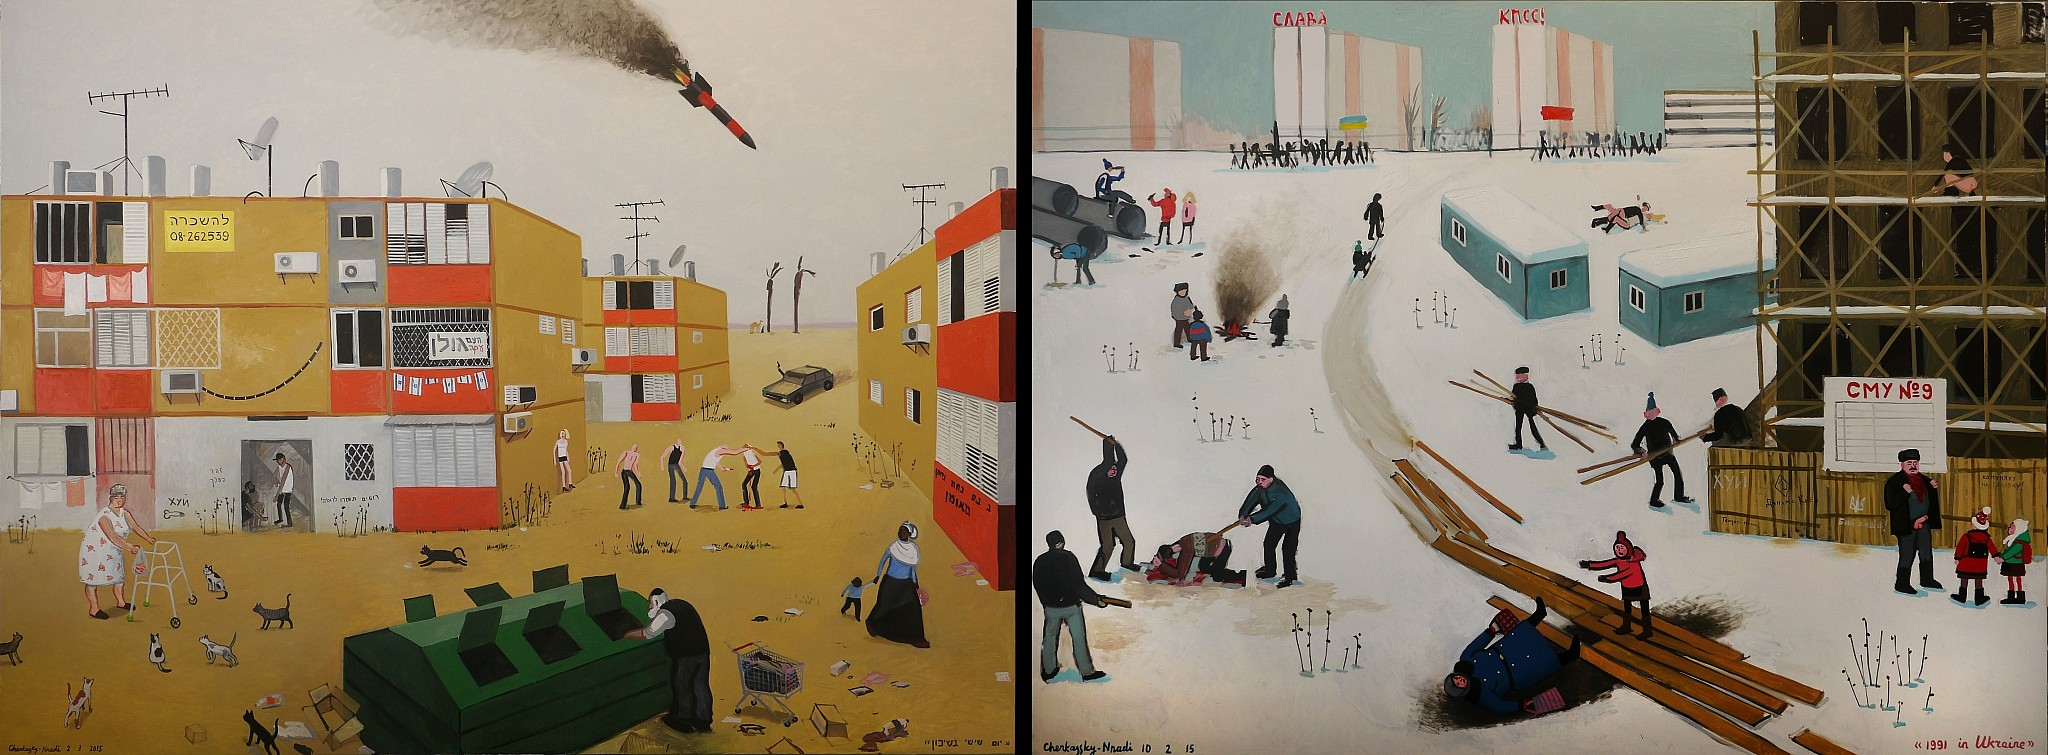 1991 Ukraine'; 'Friday in the Projects' (diptych), Zoya Cherkassky, 2015. Oil on linen, 200×270 cm each, Israel Museum purchase.jpg